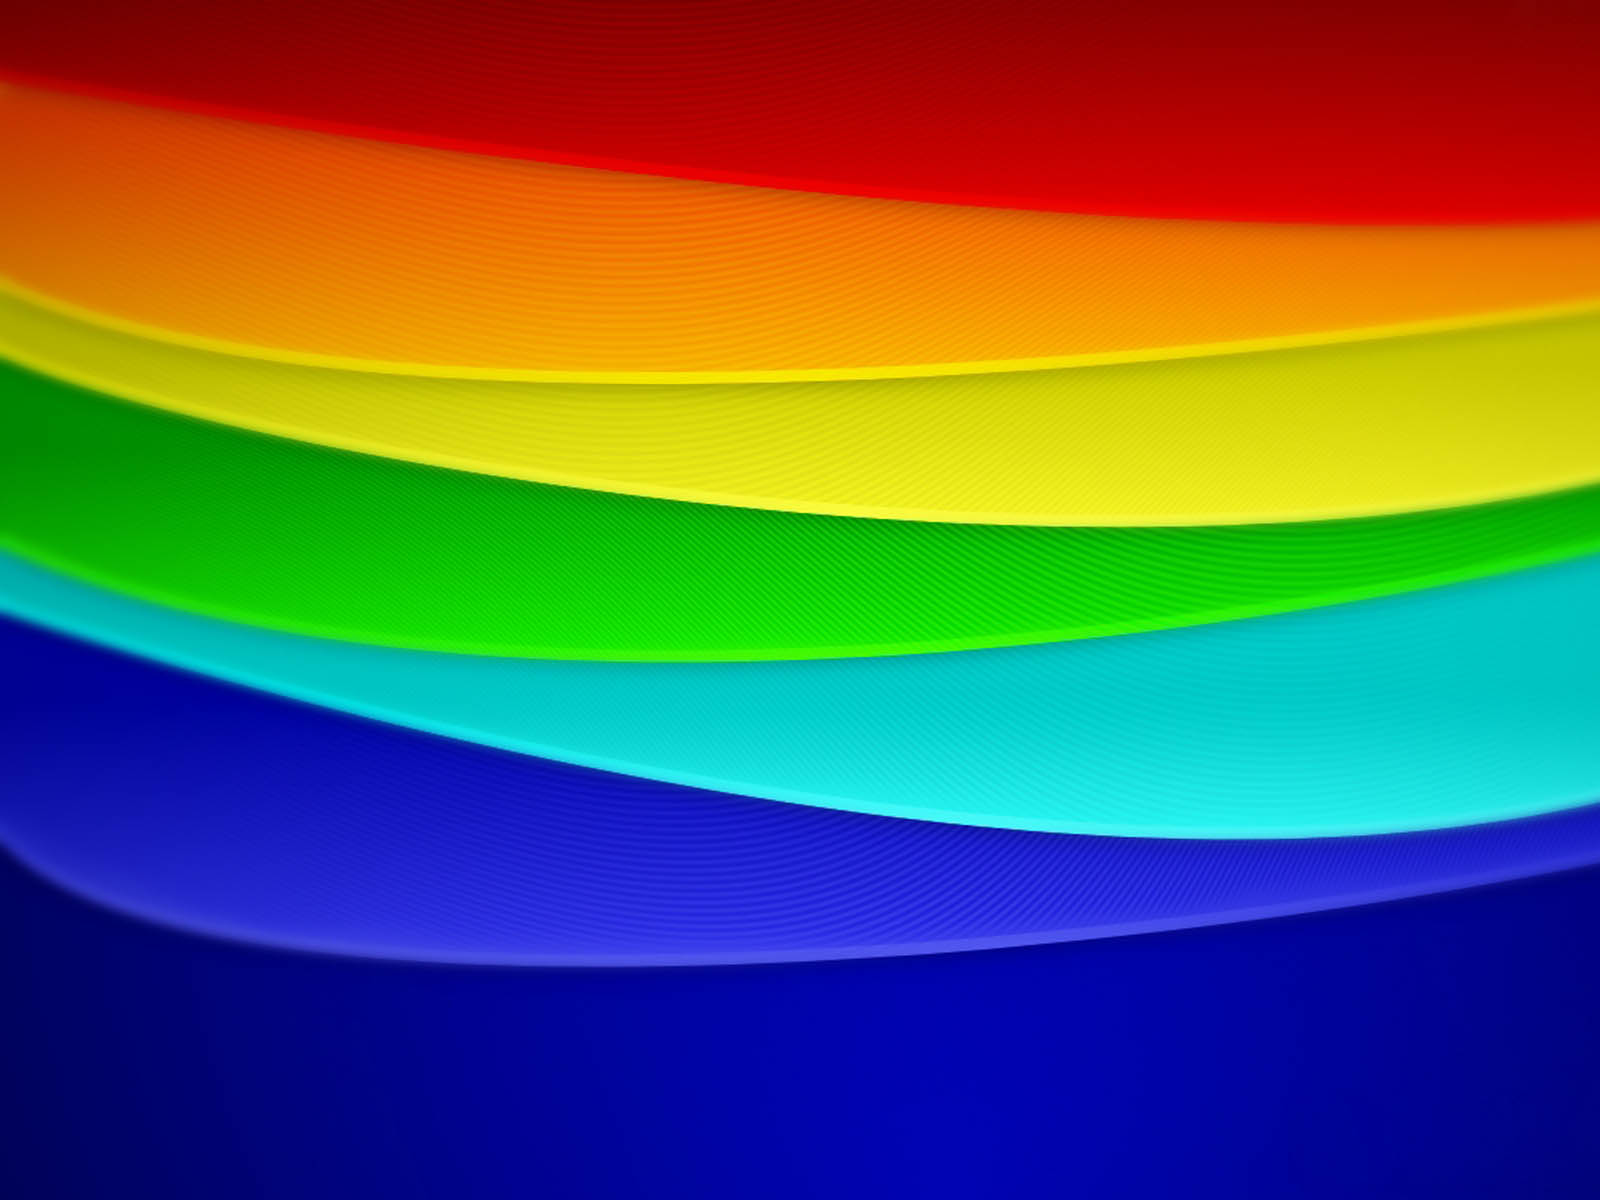 Amazing 3d Live Wallpapers Hd Rainbow Wallpapers For Android 39 Dzbc Org